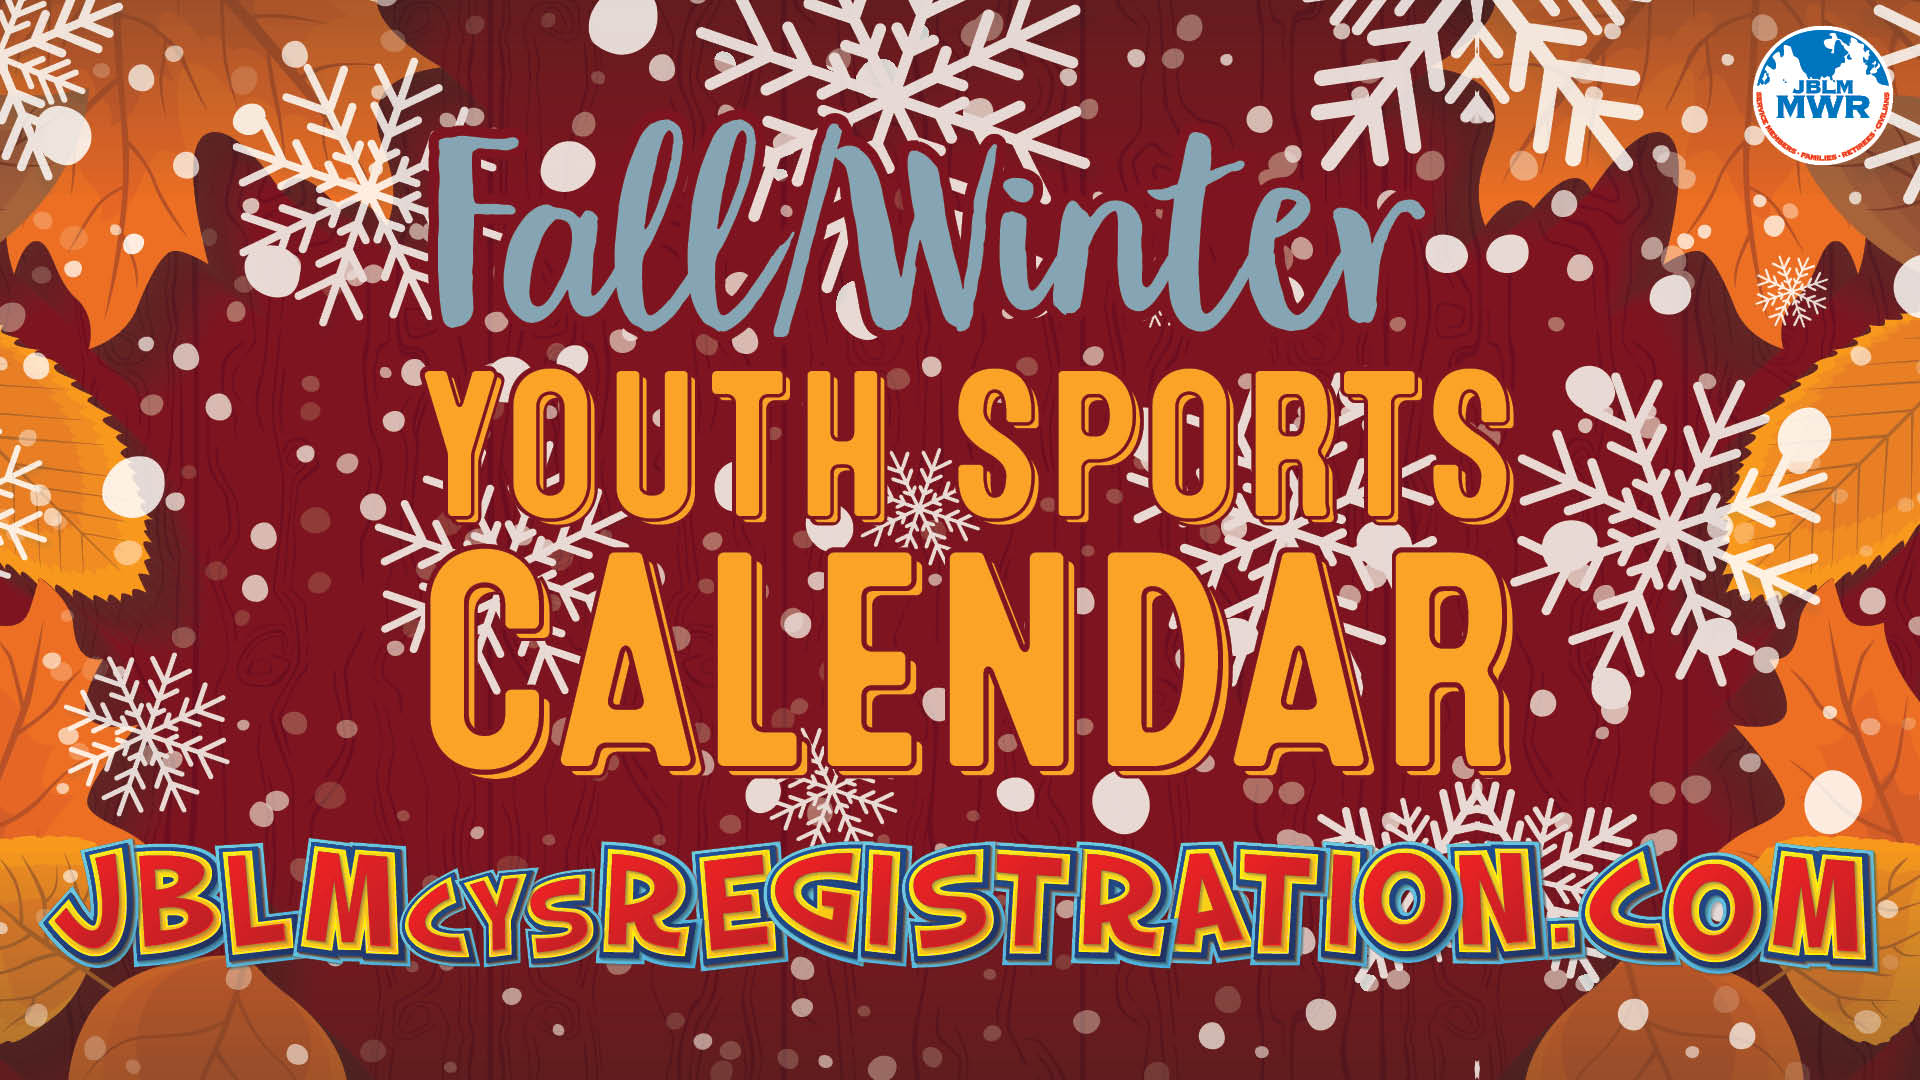 Fall/Winter Youth Sports Calendar